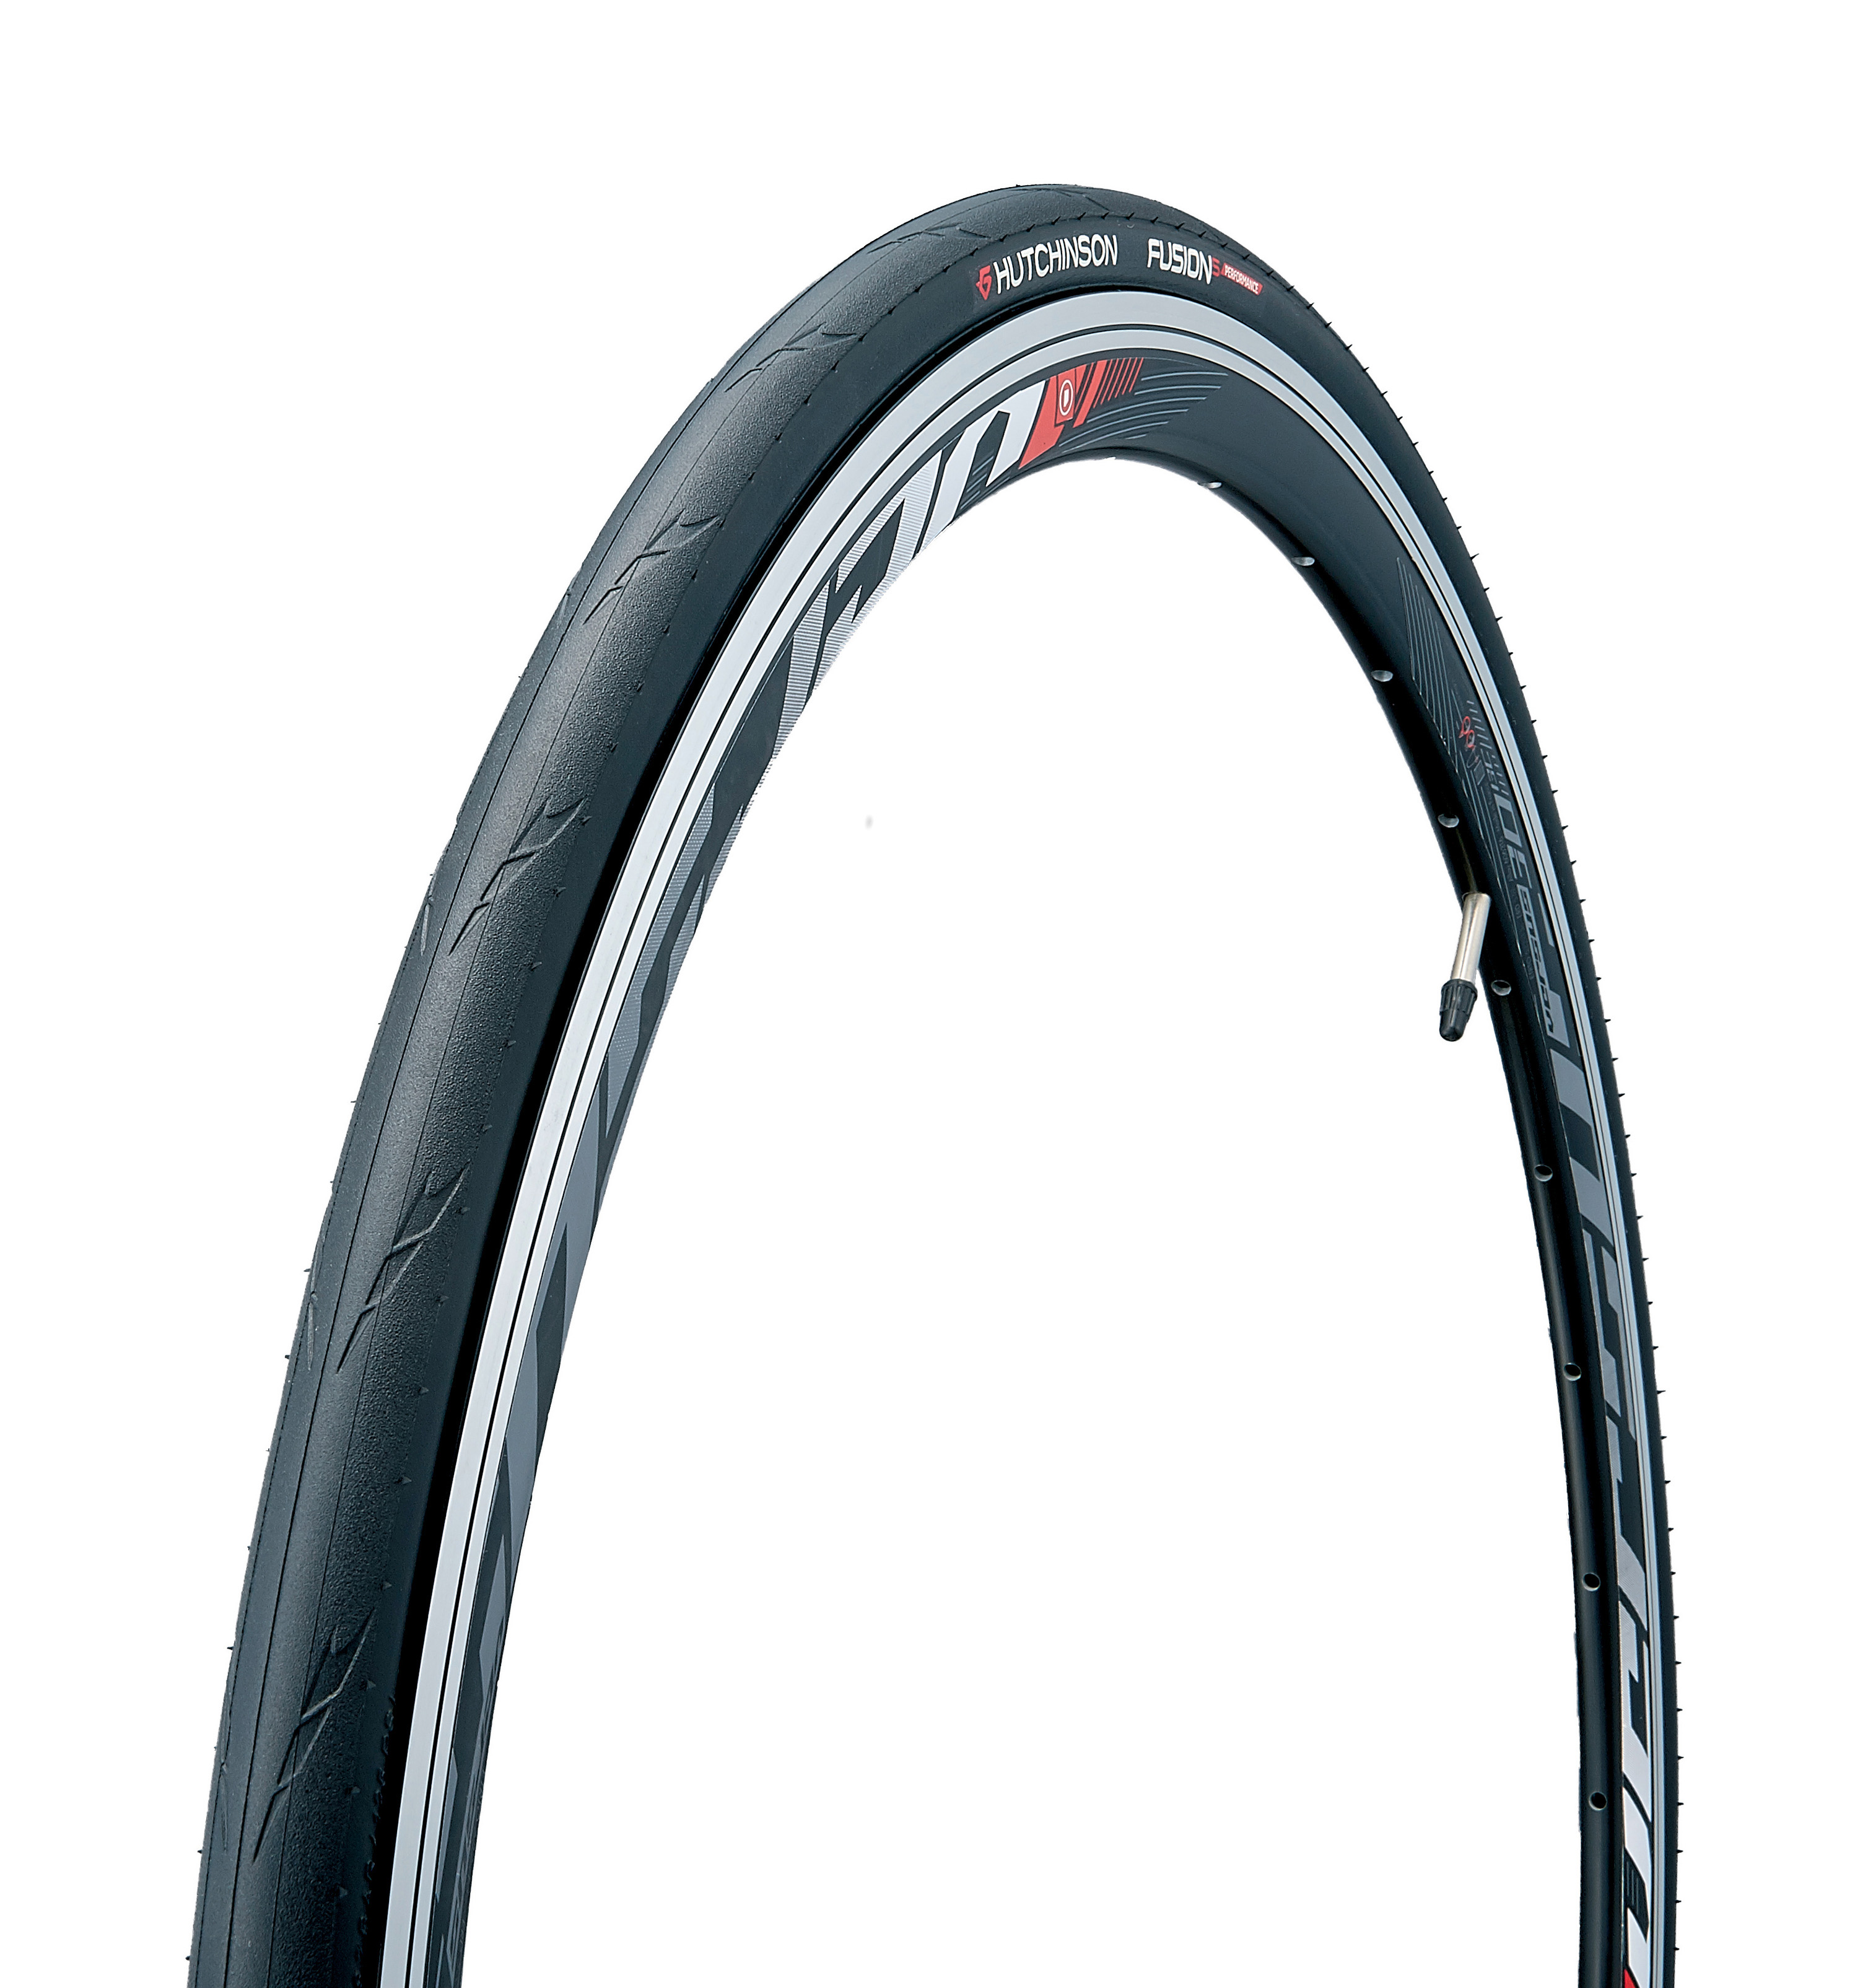 Road-Bike-Tyre-Hutchinson-Fusion-5-Performance-Road-Tire-700-X-23-Tt-Kp thumbnail 1